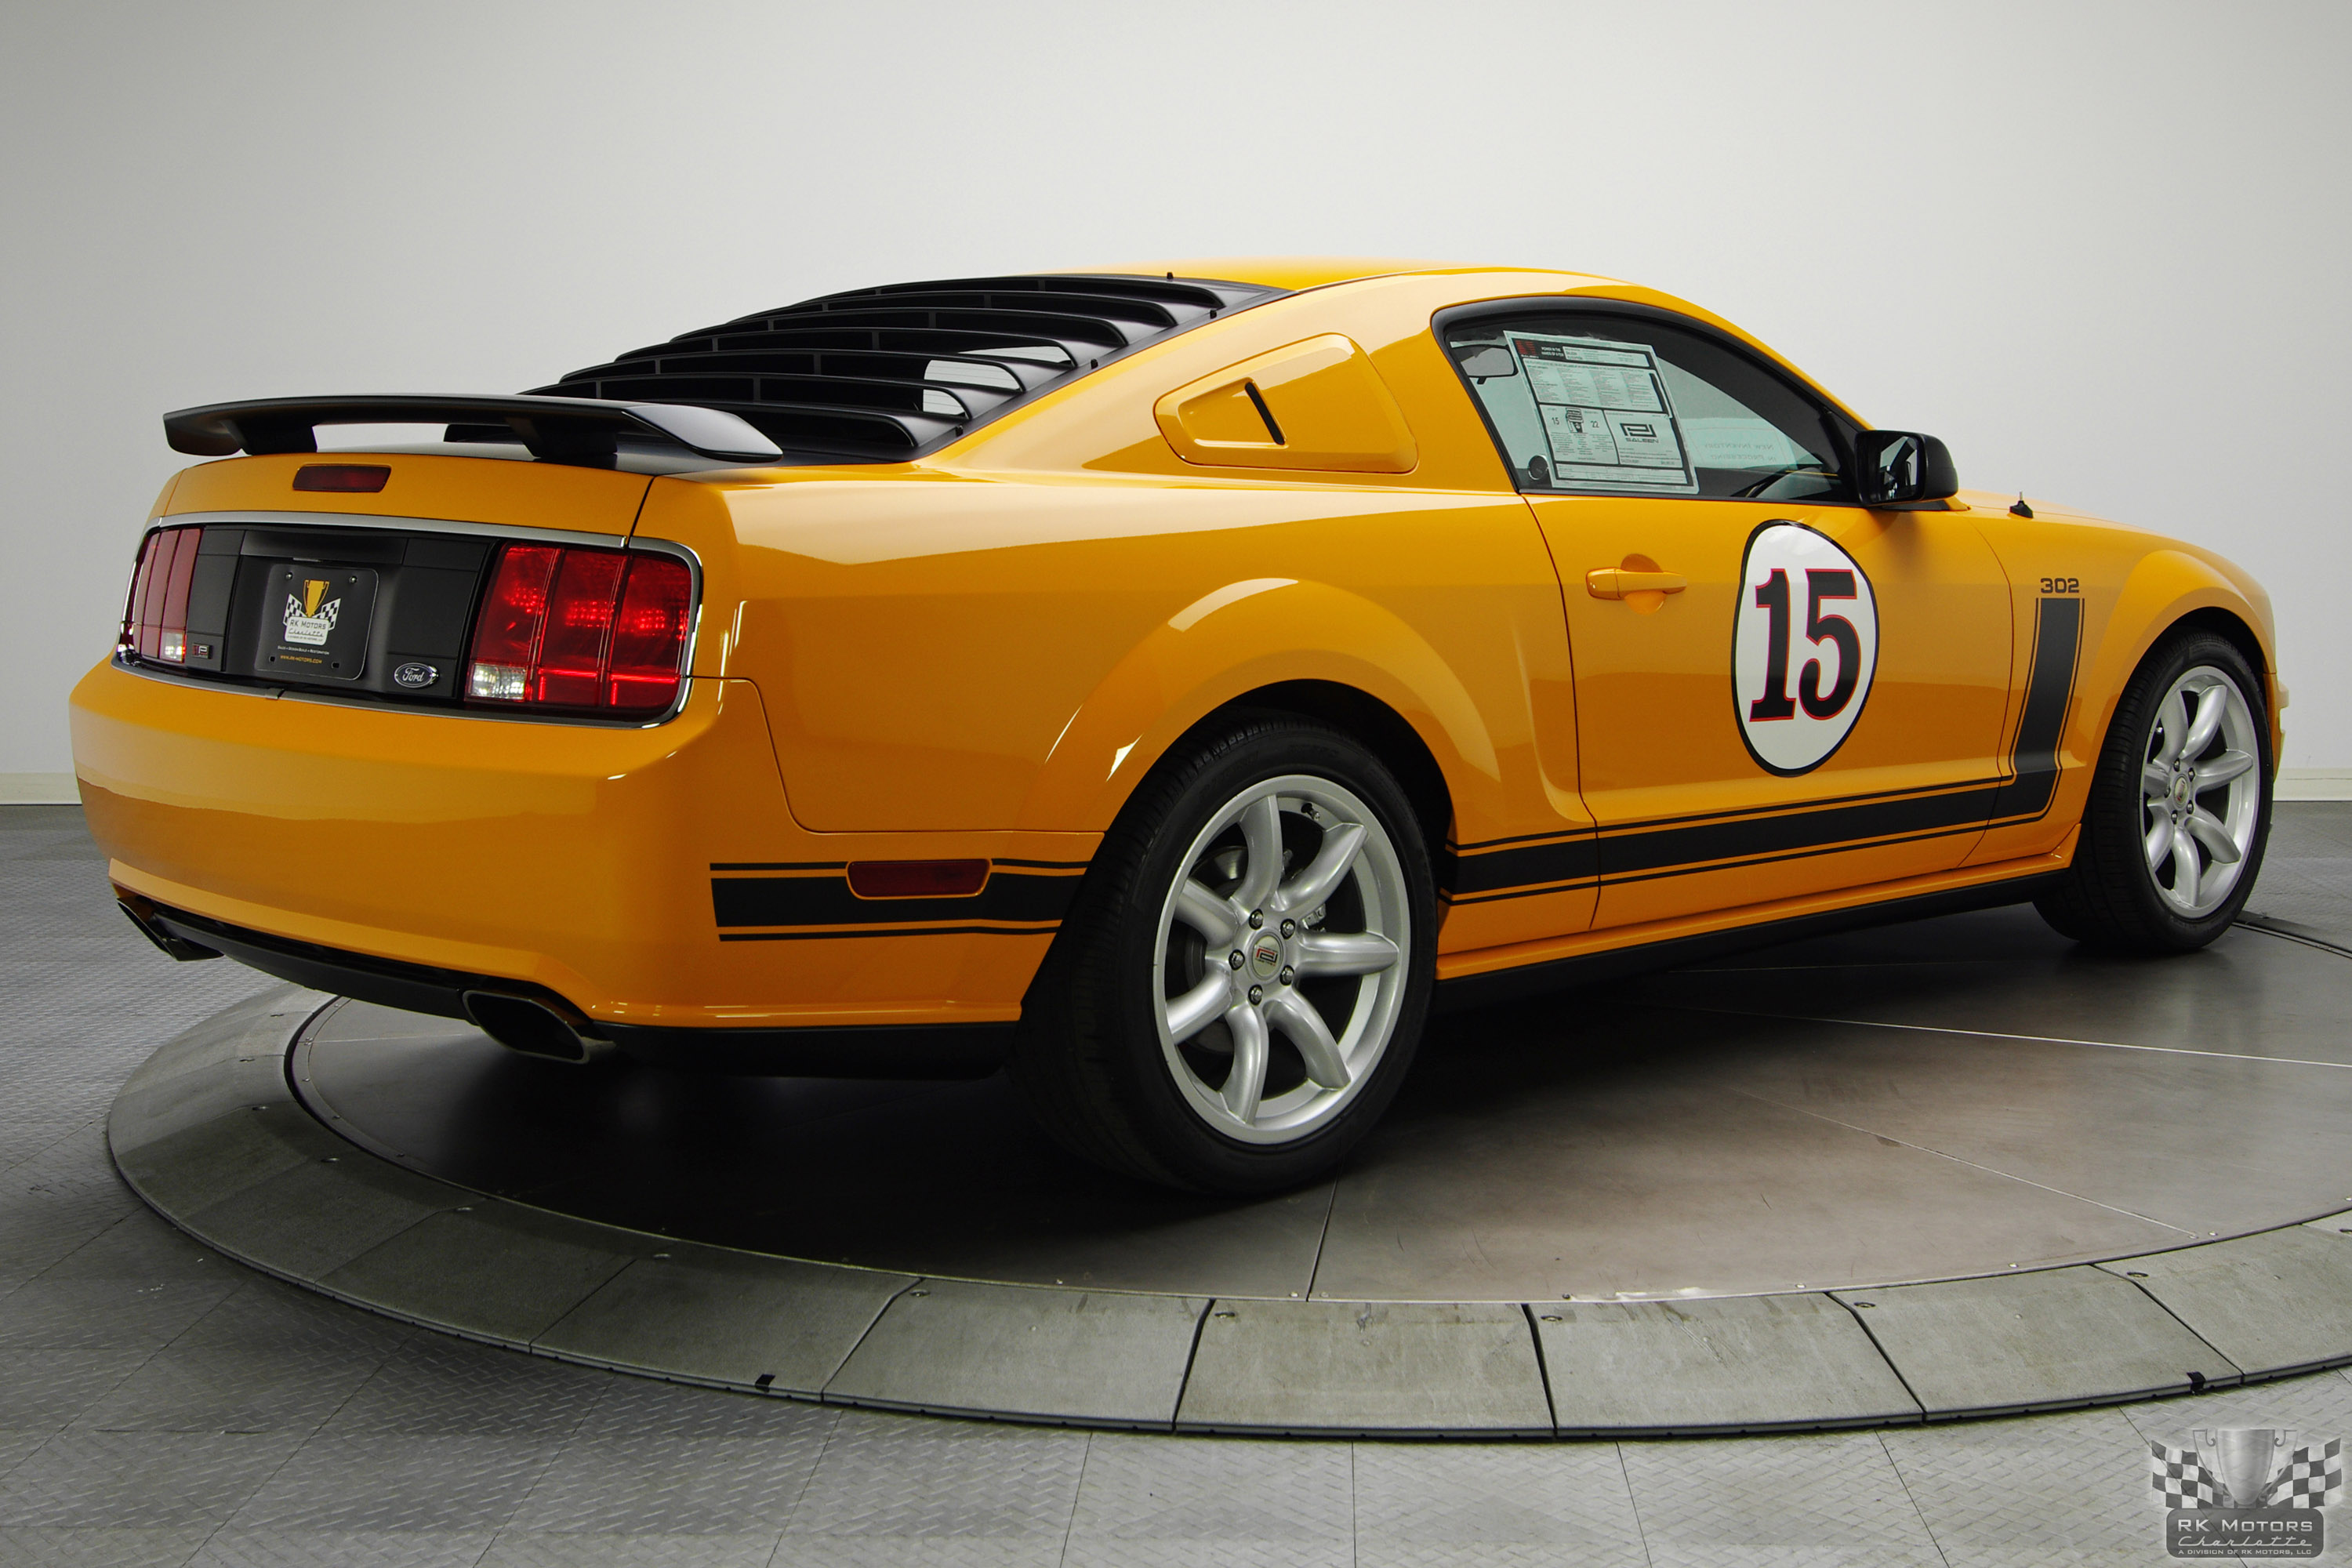 2007 ford saleen mustang parnelli jones 302 muscle cars news and pictures. Black Bedroom Furniture Sets. Home Design Ideas